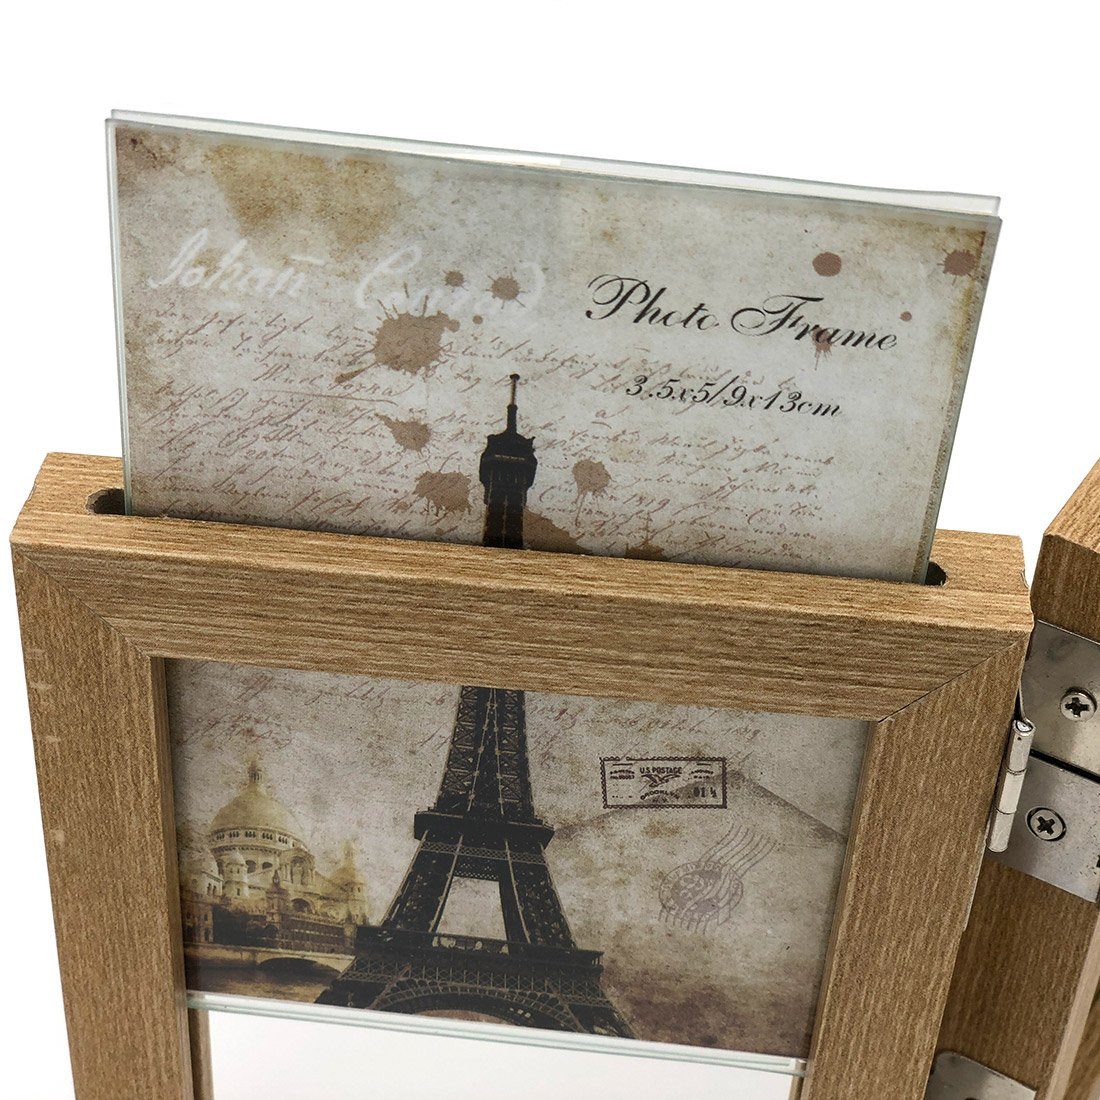 INEYMALL Wooden Photo Frame Folding 3 Stage Photo Frame With Glass 3.5x5 (beige) by INEYMALL (Image #4)